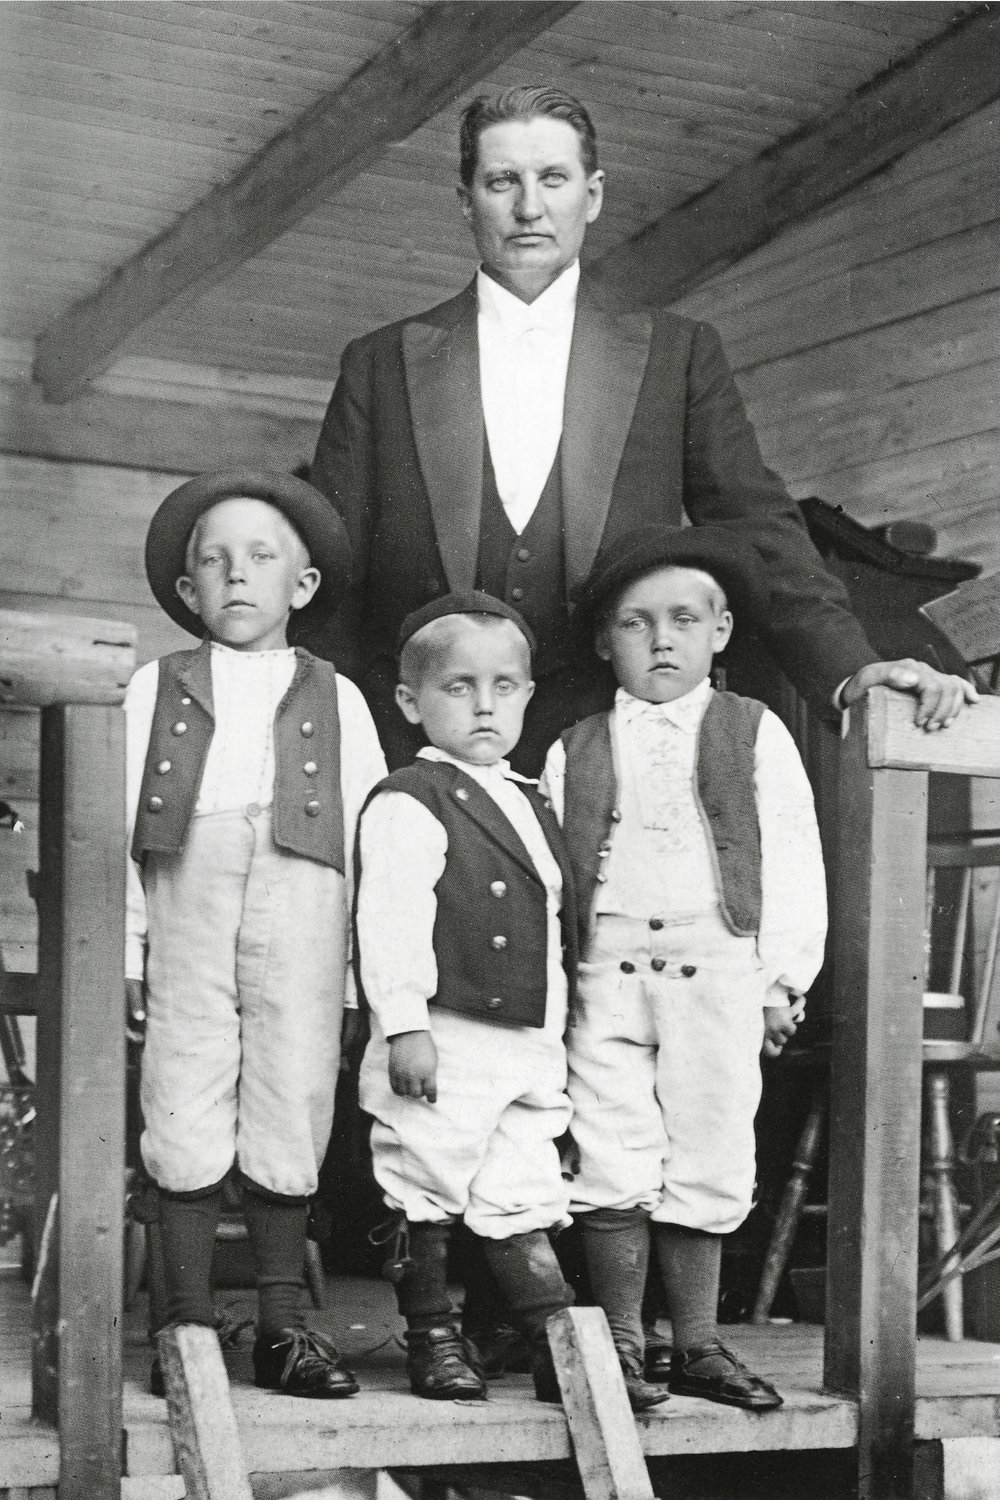 David Björling was a tenor and singing teacher, and trained the voices of his children from an early age (Olle, Jussi and Gösta).